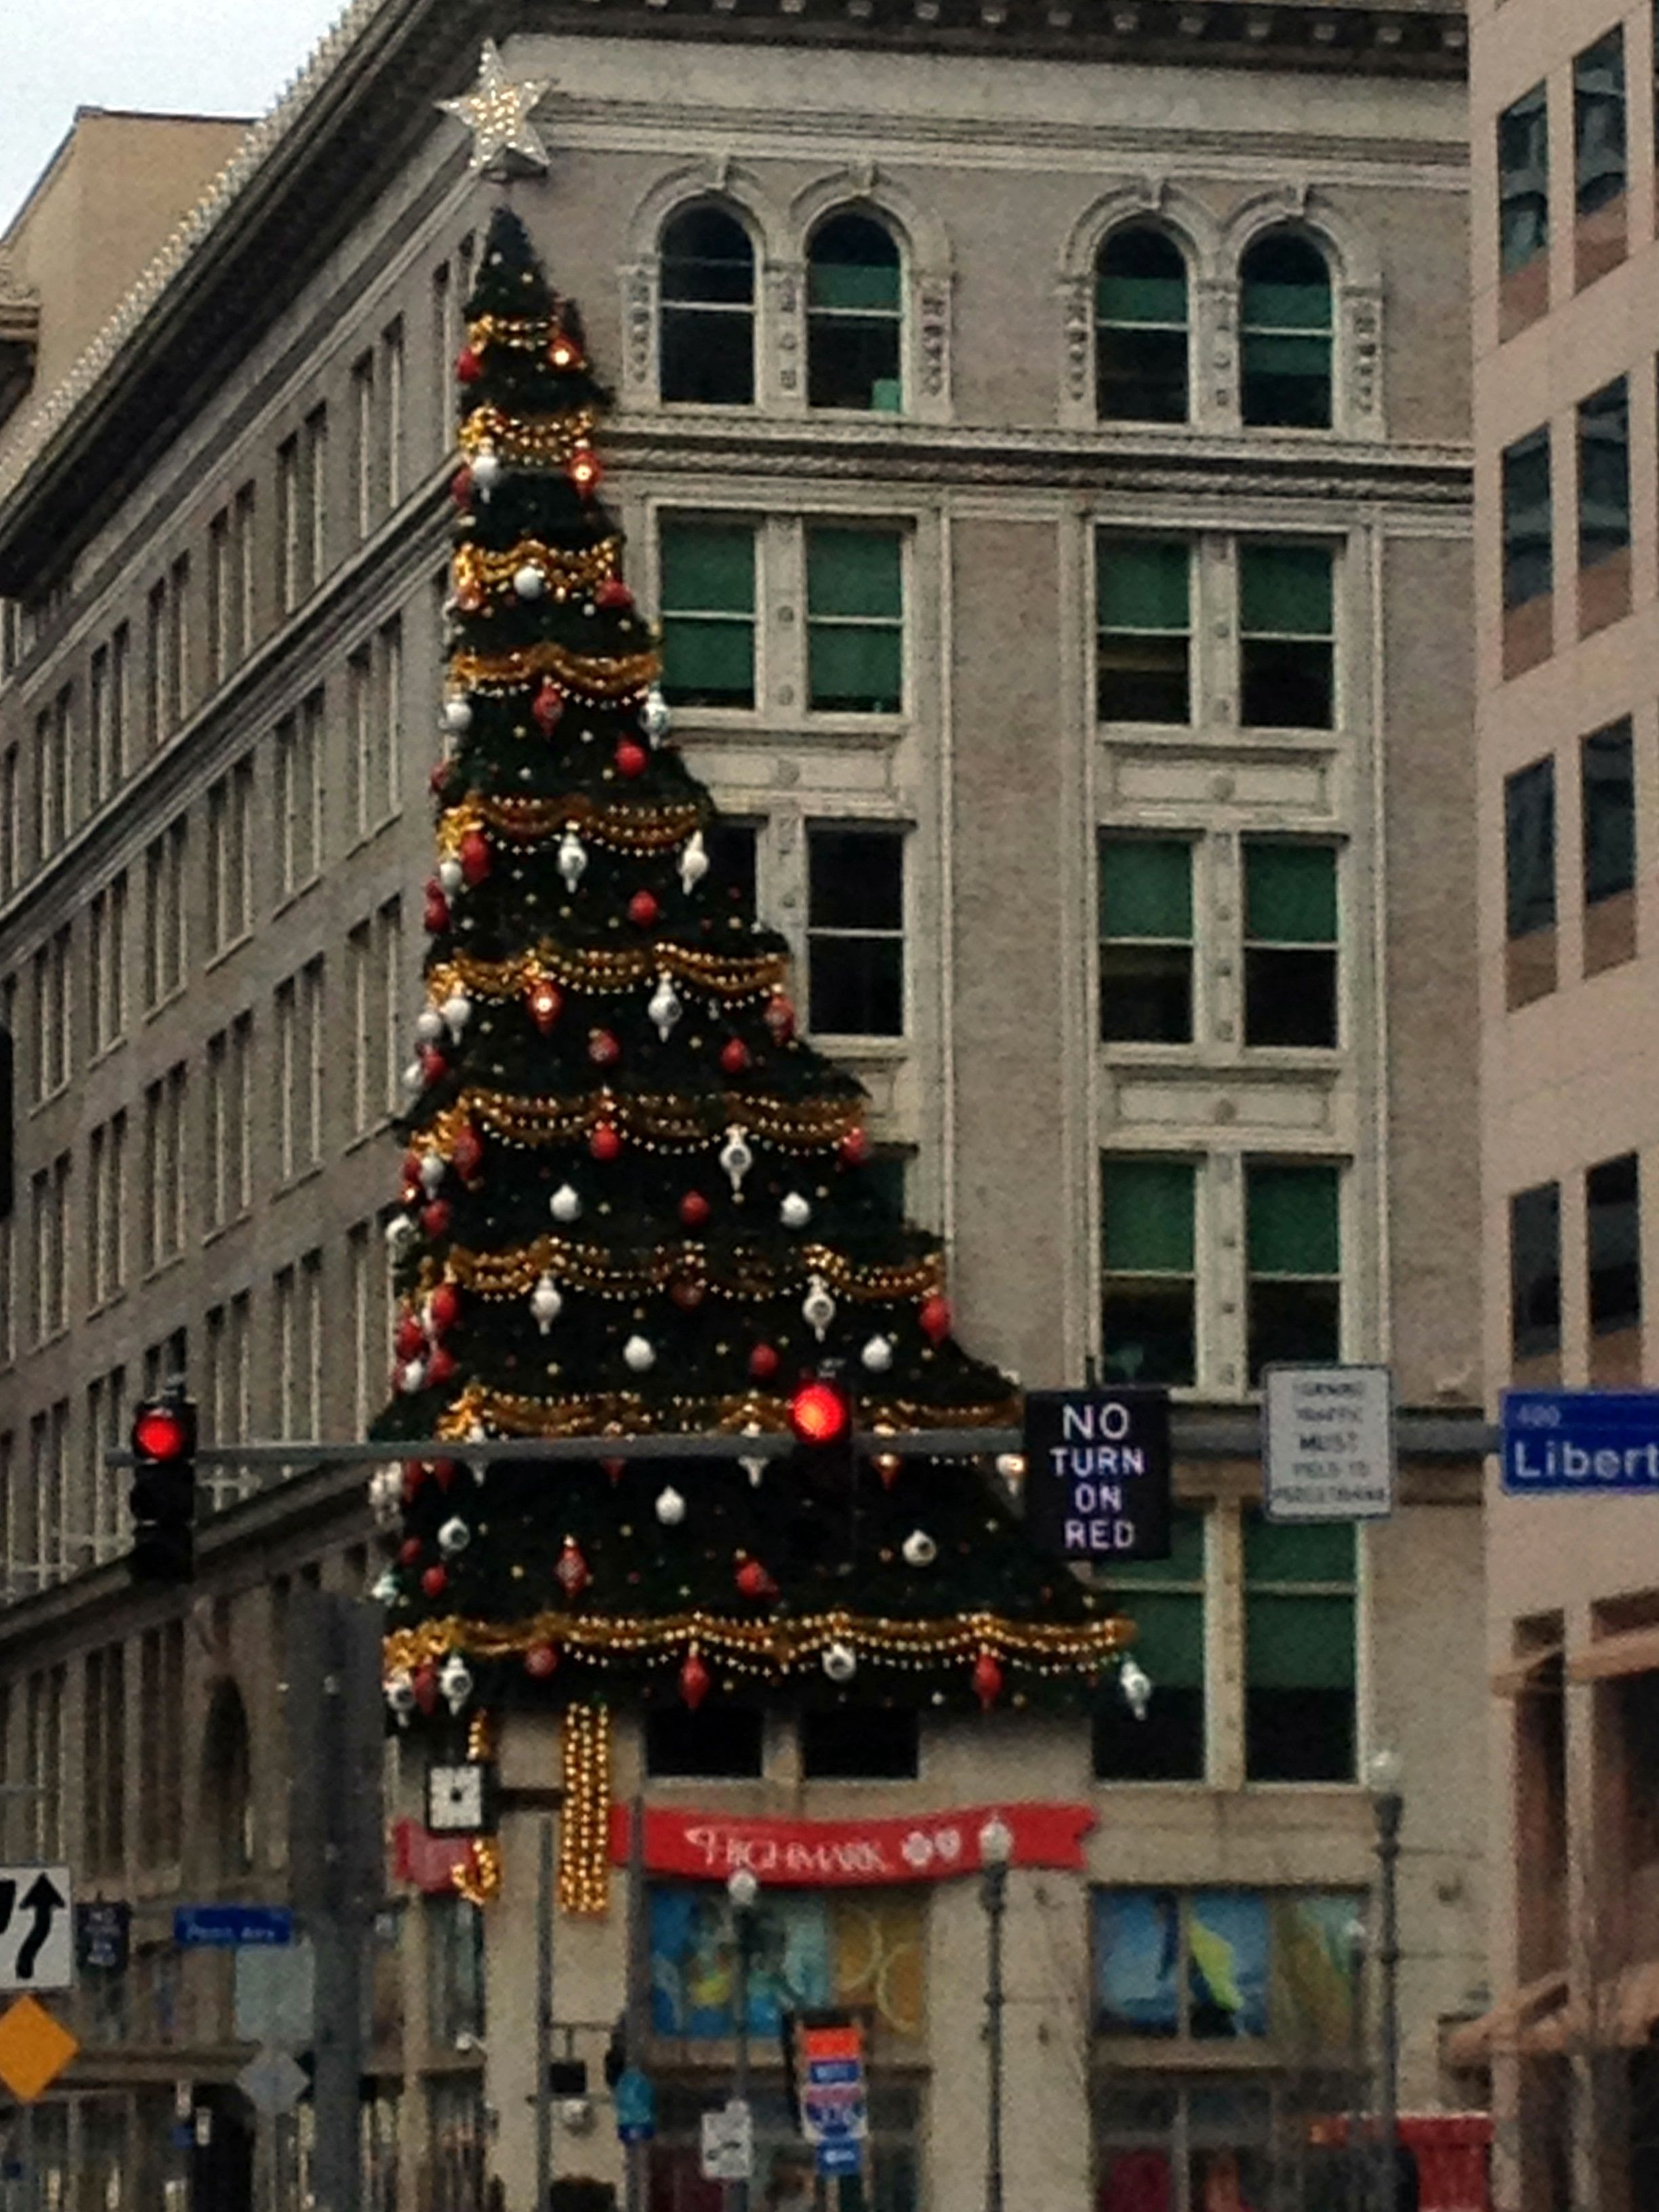 COOL TREE IN DOWN TOWN PITTSBURGH WHICH IS VERY PRETTY AT NIGHT FOR SURE